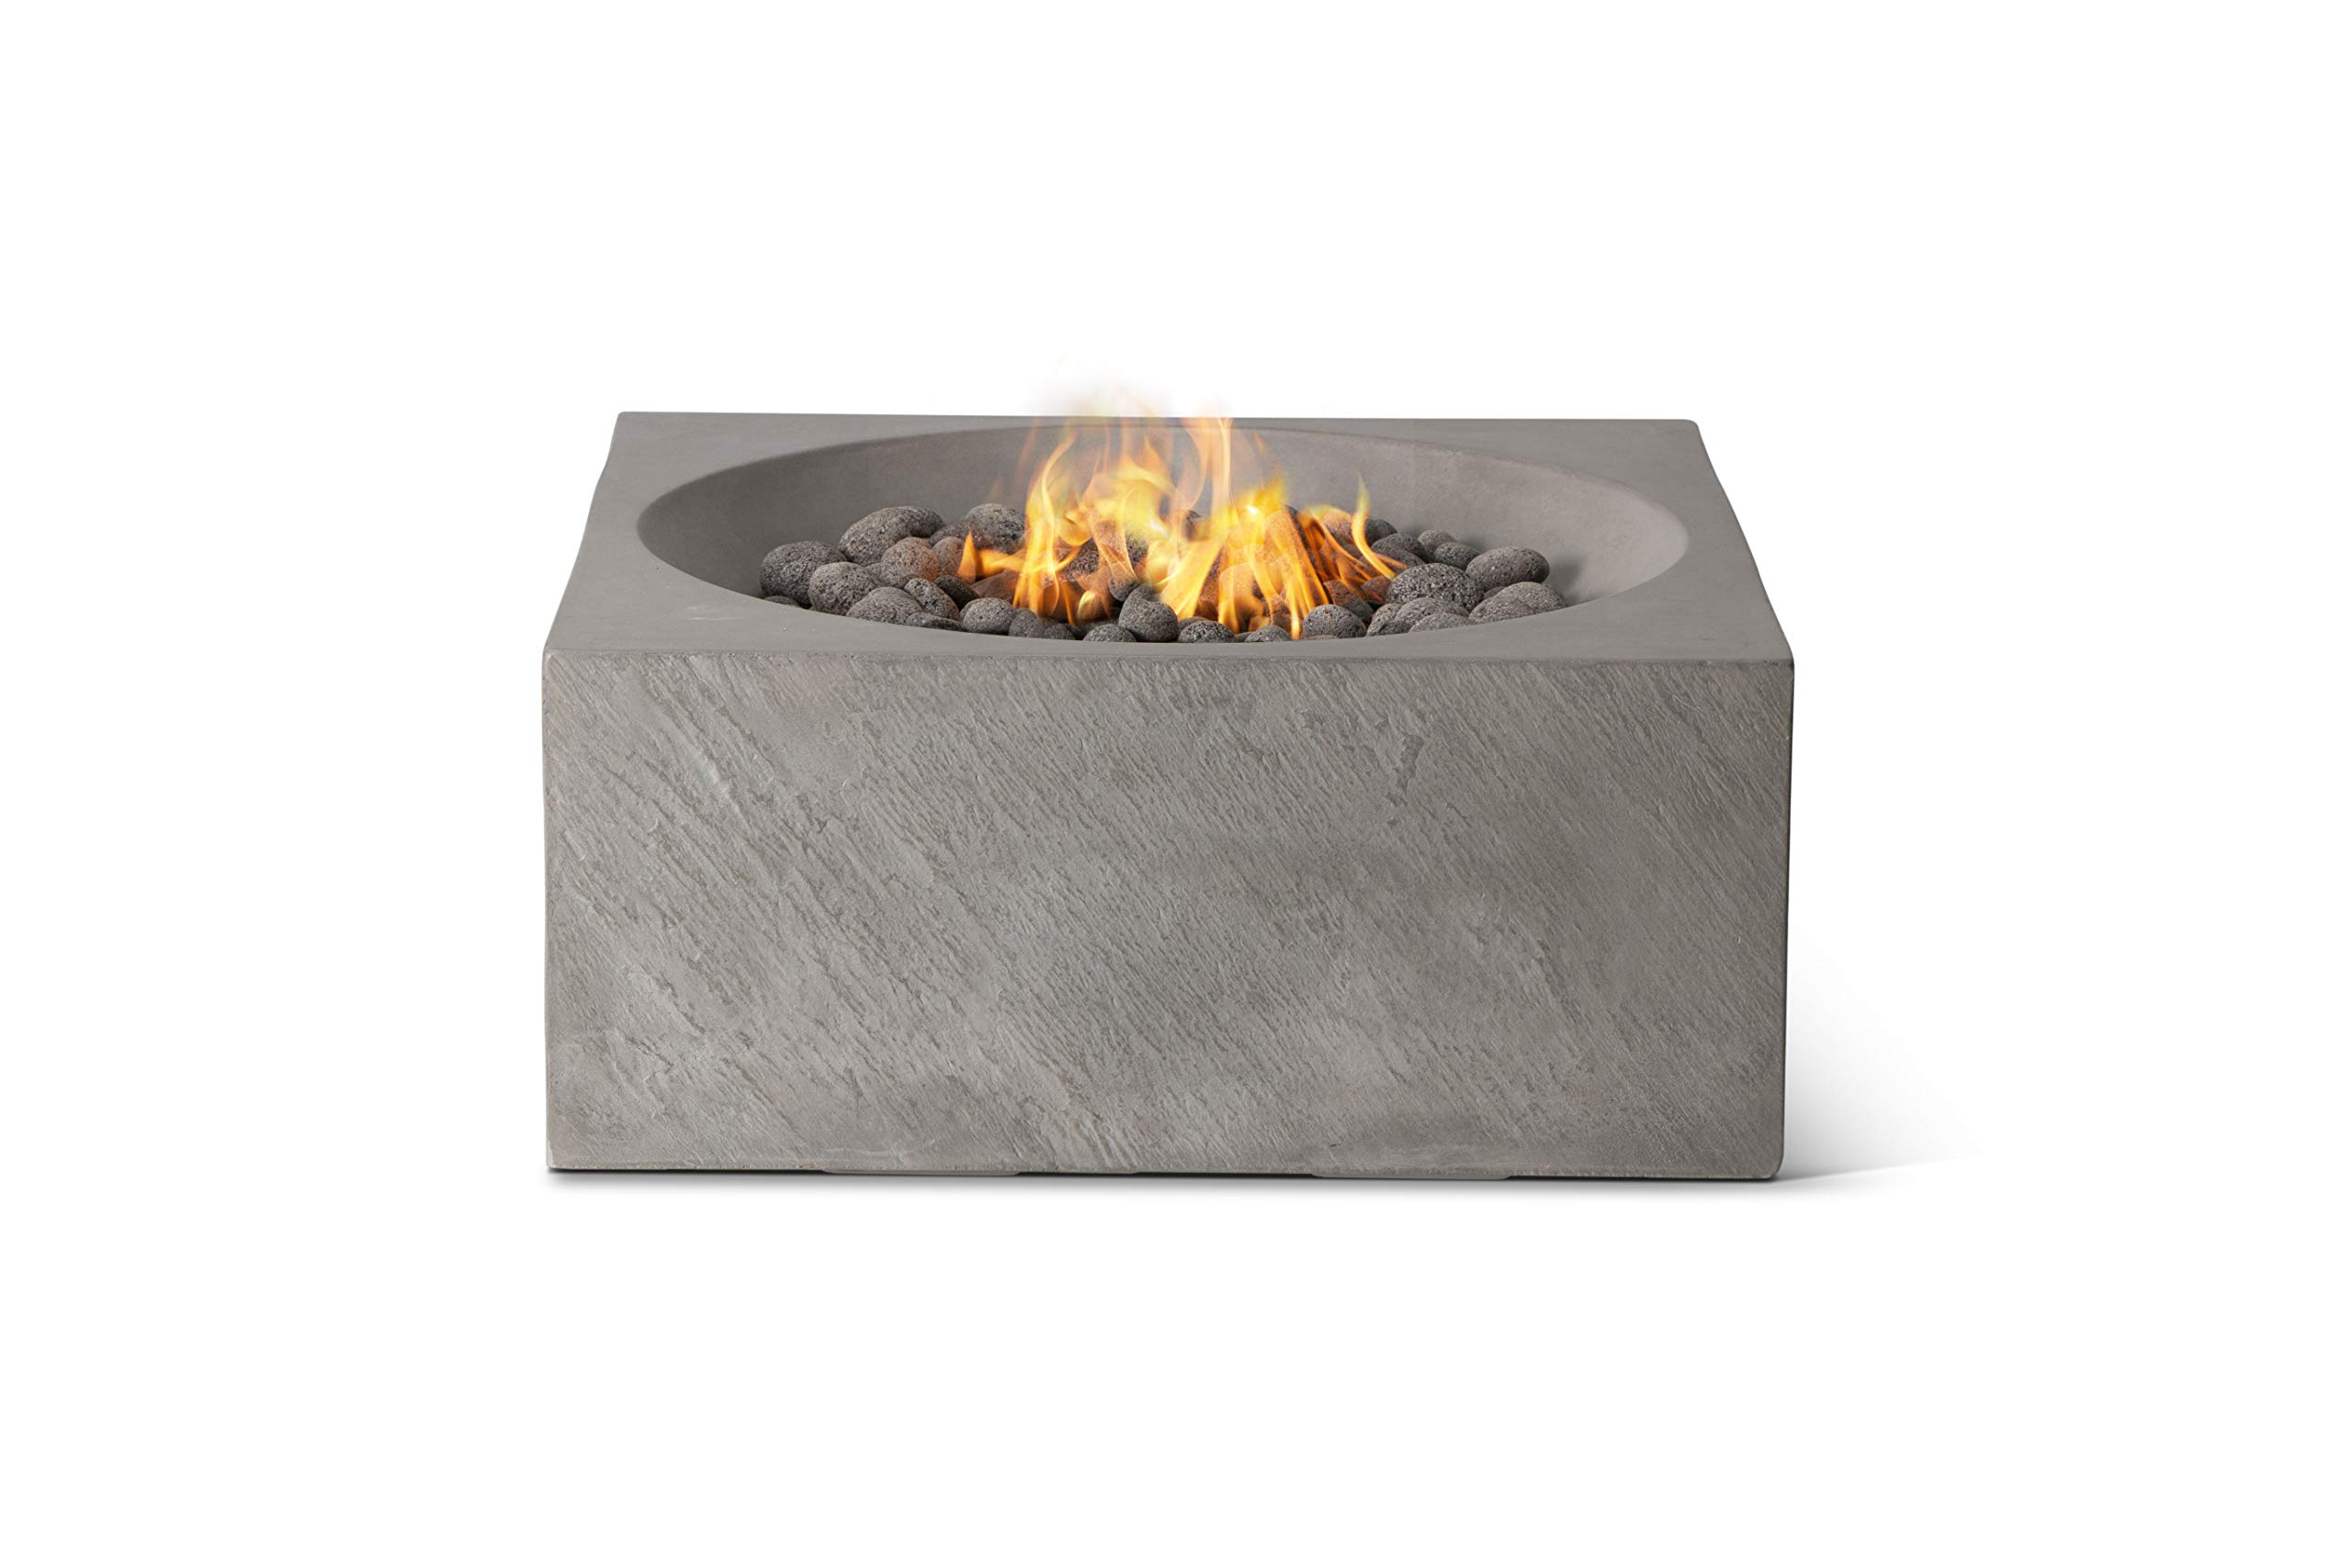 Pyromania Bonita Outdoor Fire Table, Fire Pit Table. Hand Crafted from Concrete. 60,000 BTU Stainless Steel Burner with Electronic Ignition - Propane, Slate Color ((Lava Rock Included) by Pyromania